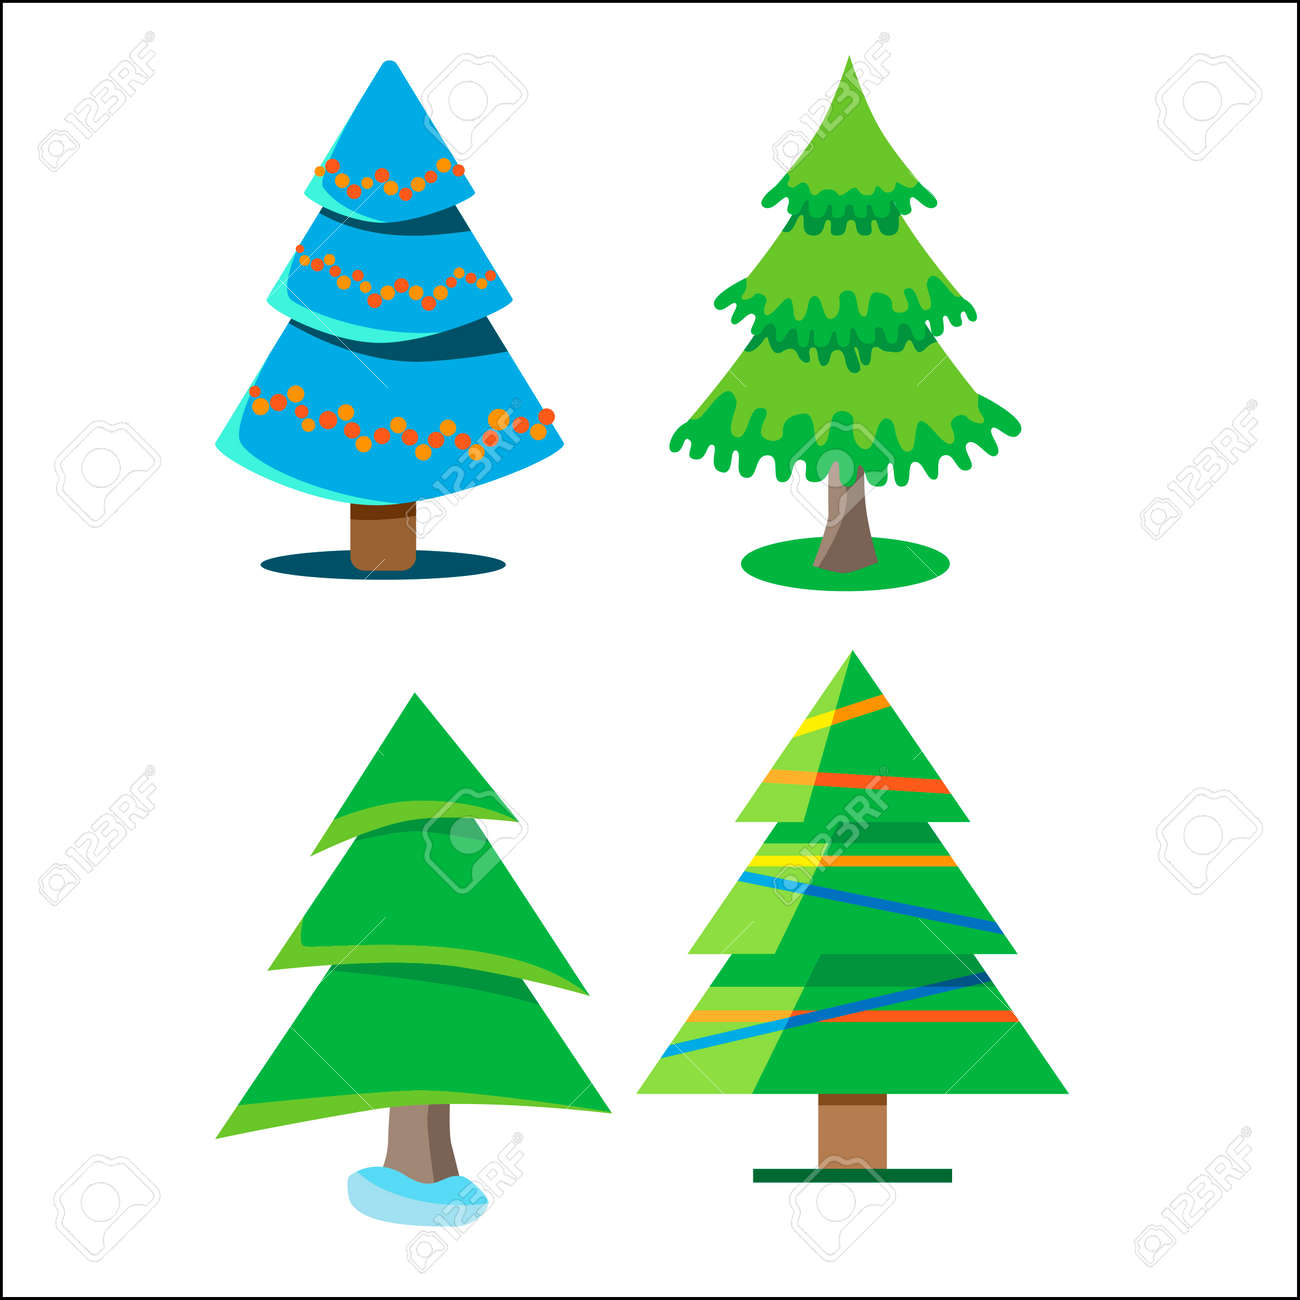 Four Christmas Trees With Different Colors And Shapes. Some Are ...